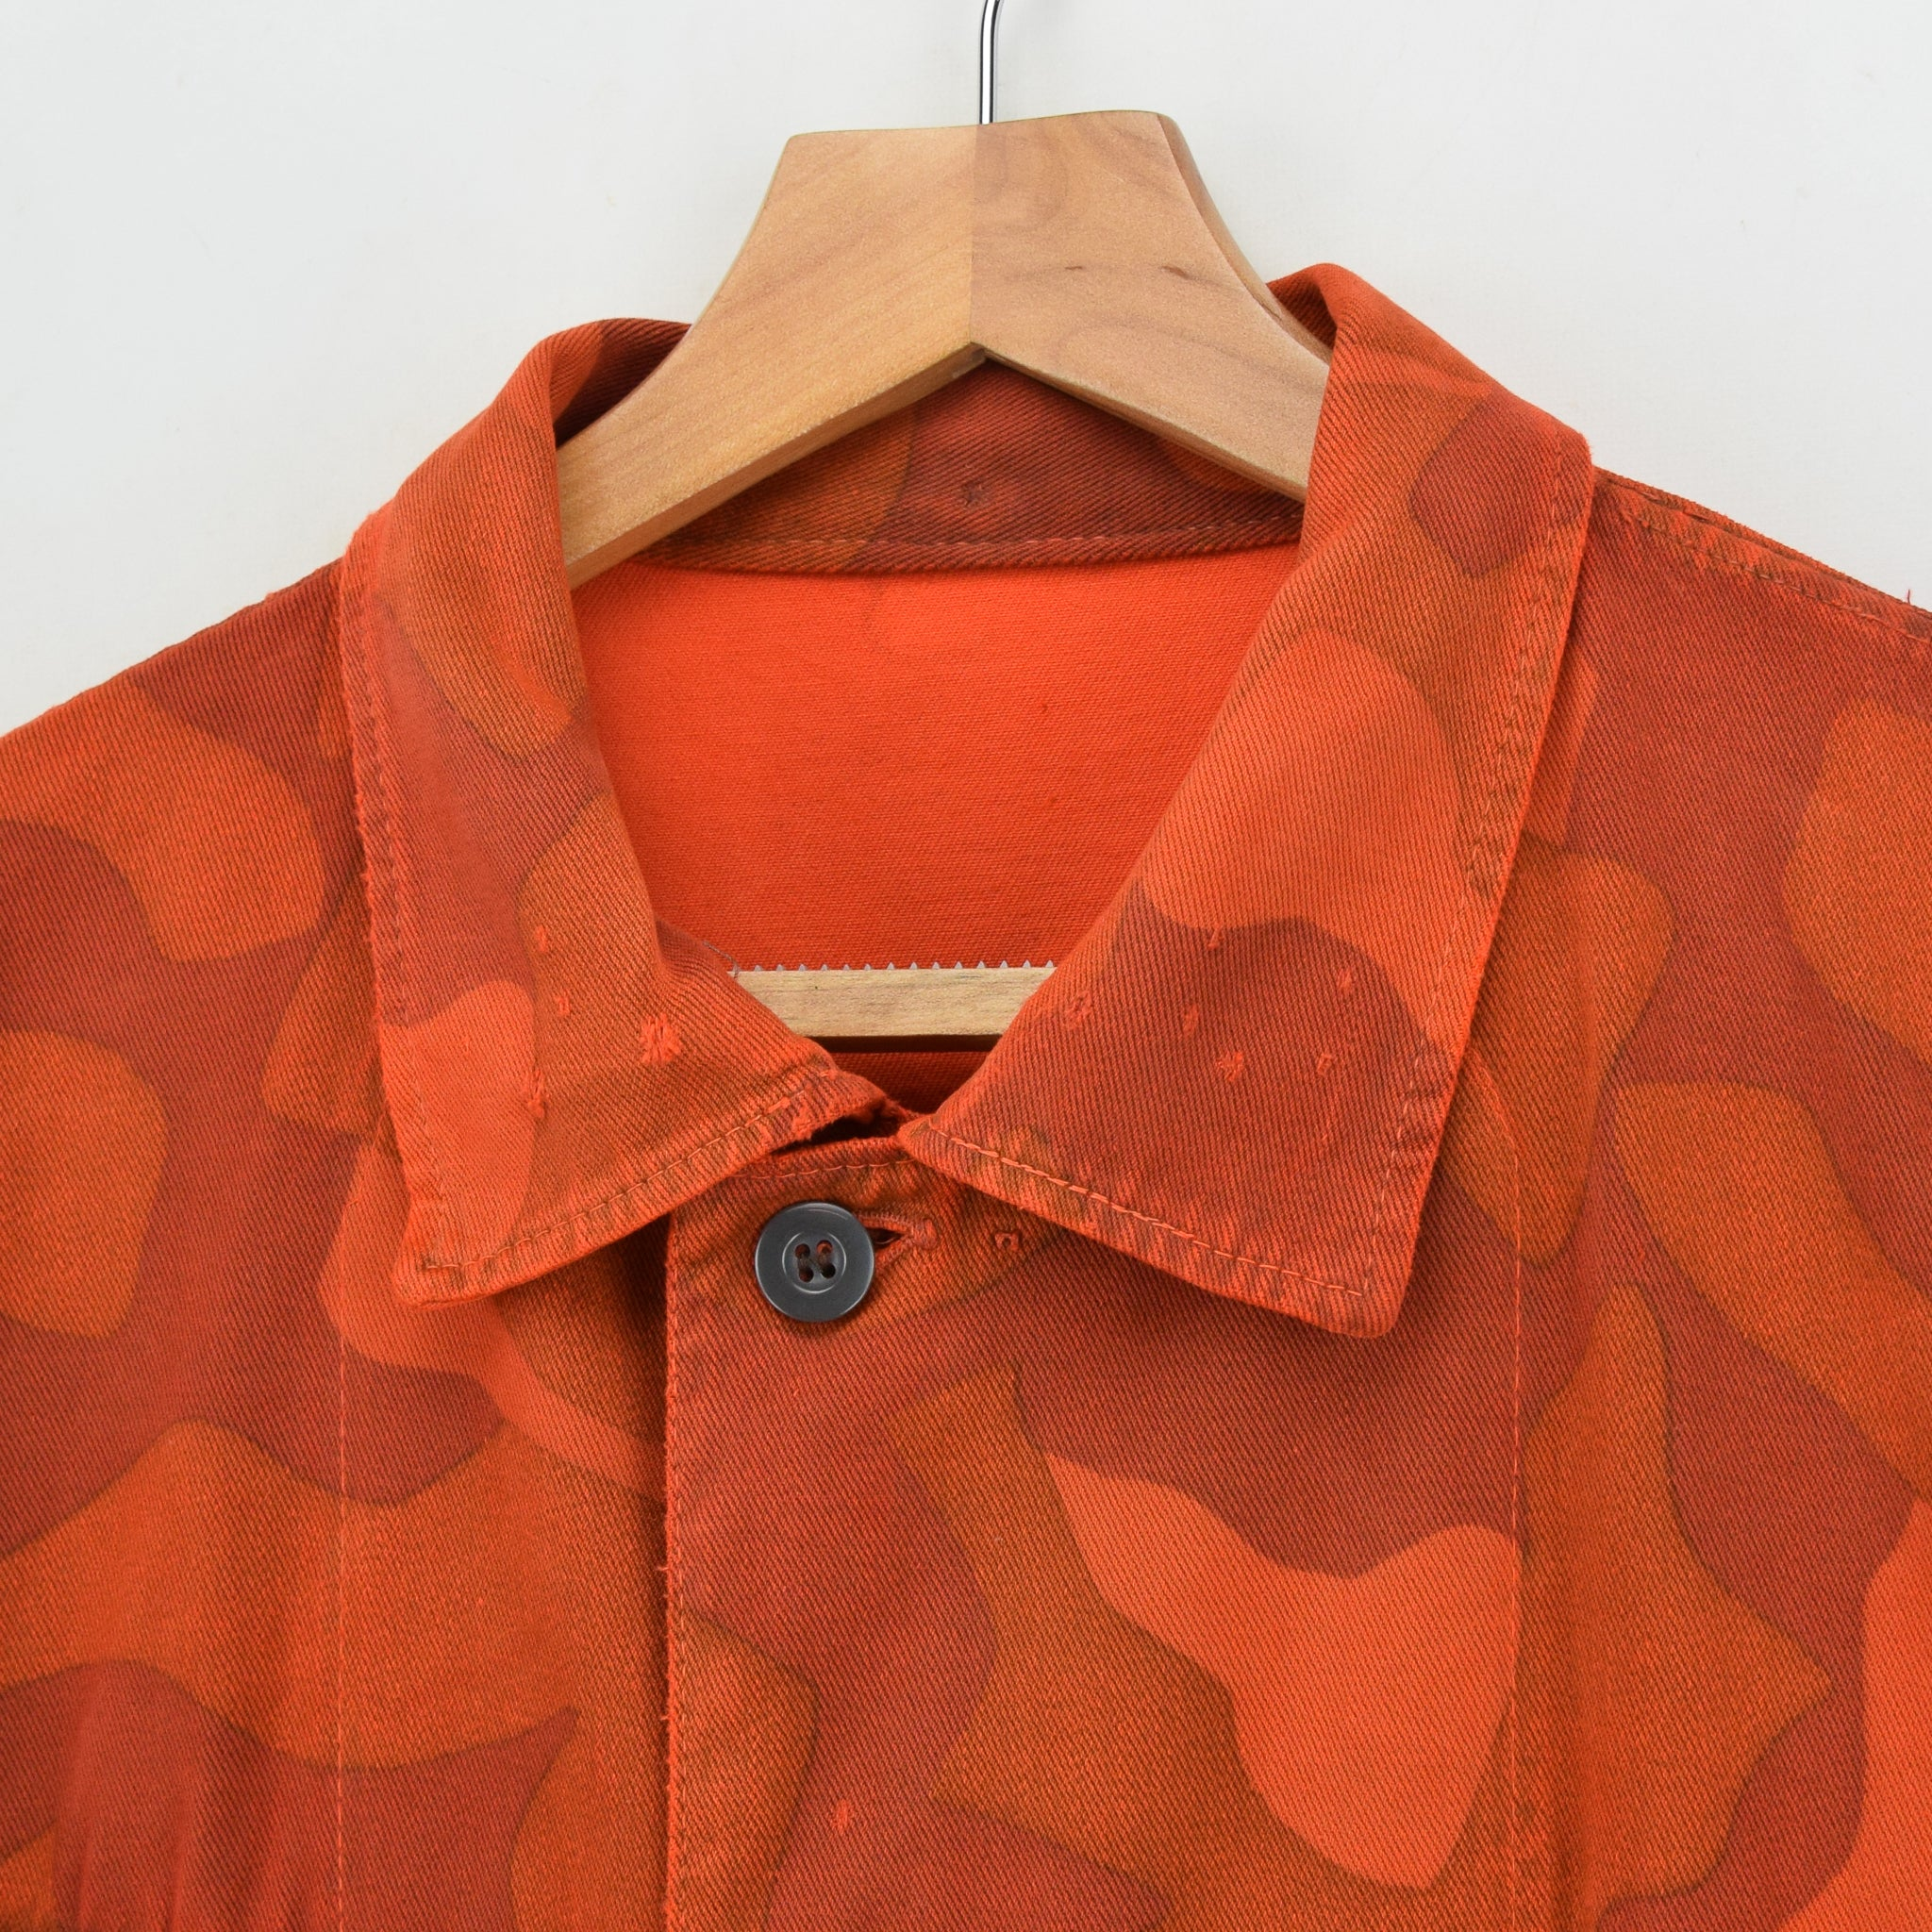 Vintage 70s Military Finnish Army Orange Overdyed Camo Mountain Field Jacket L collar